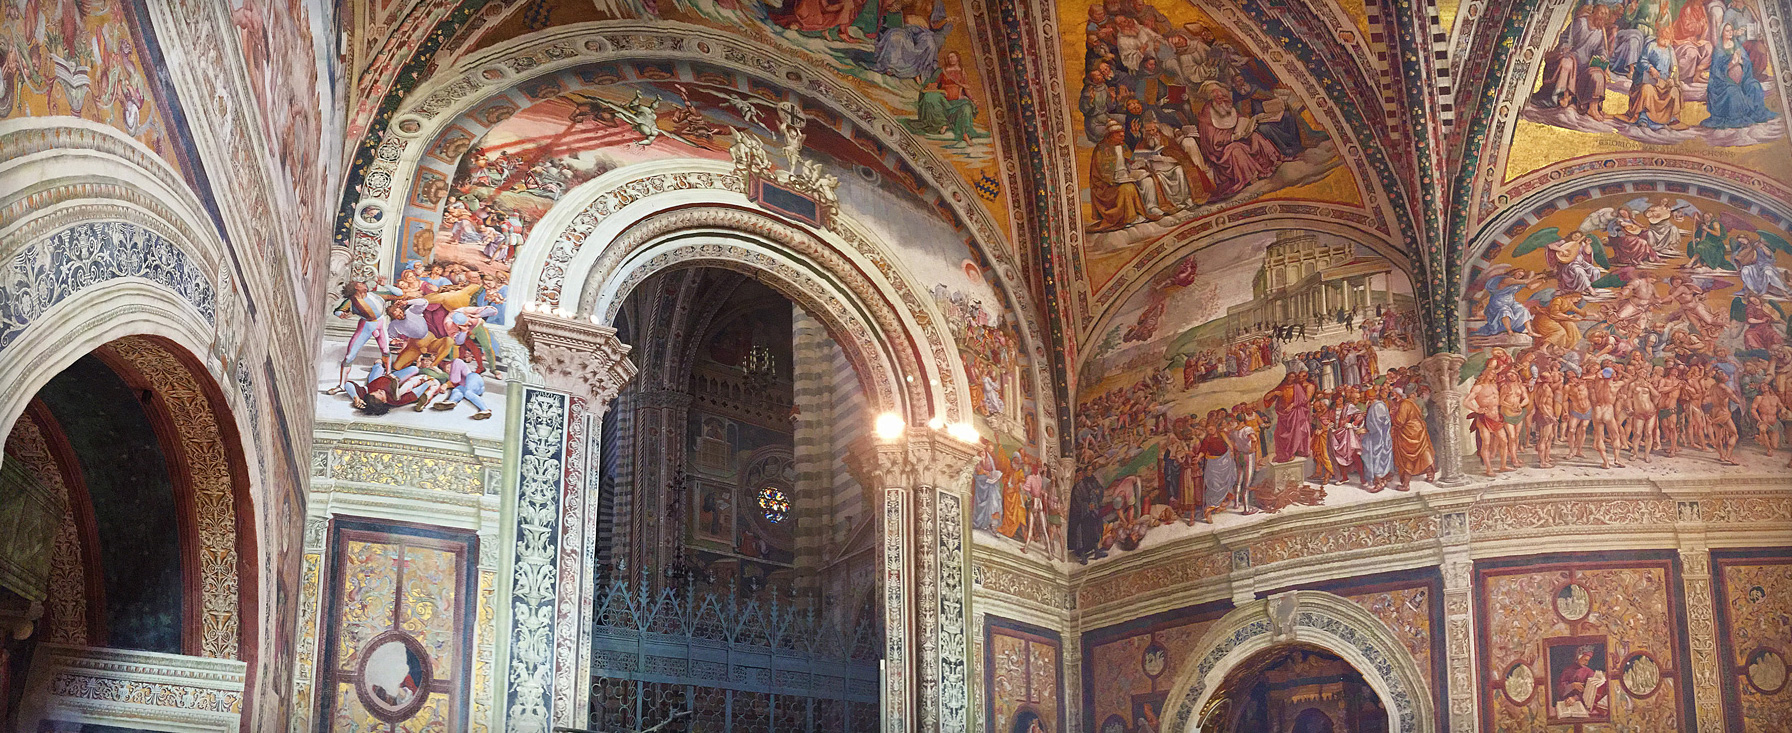 The opulent Chapel of San Brizio in Italy